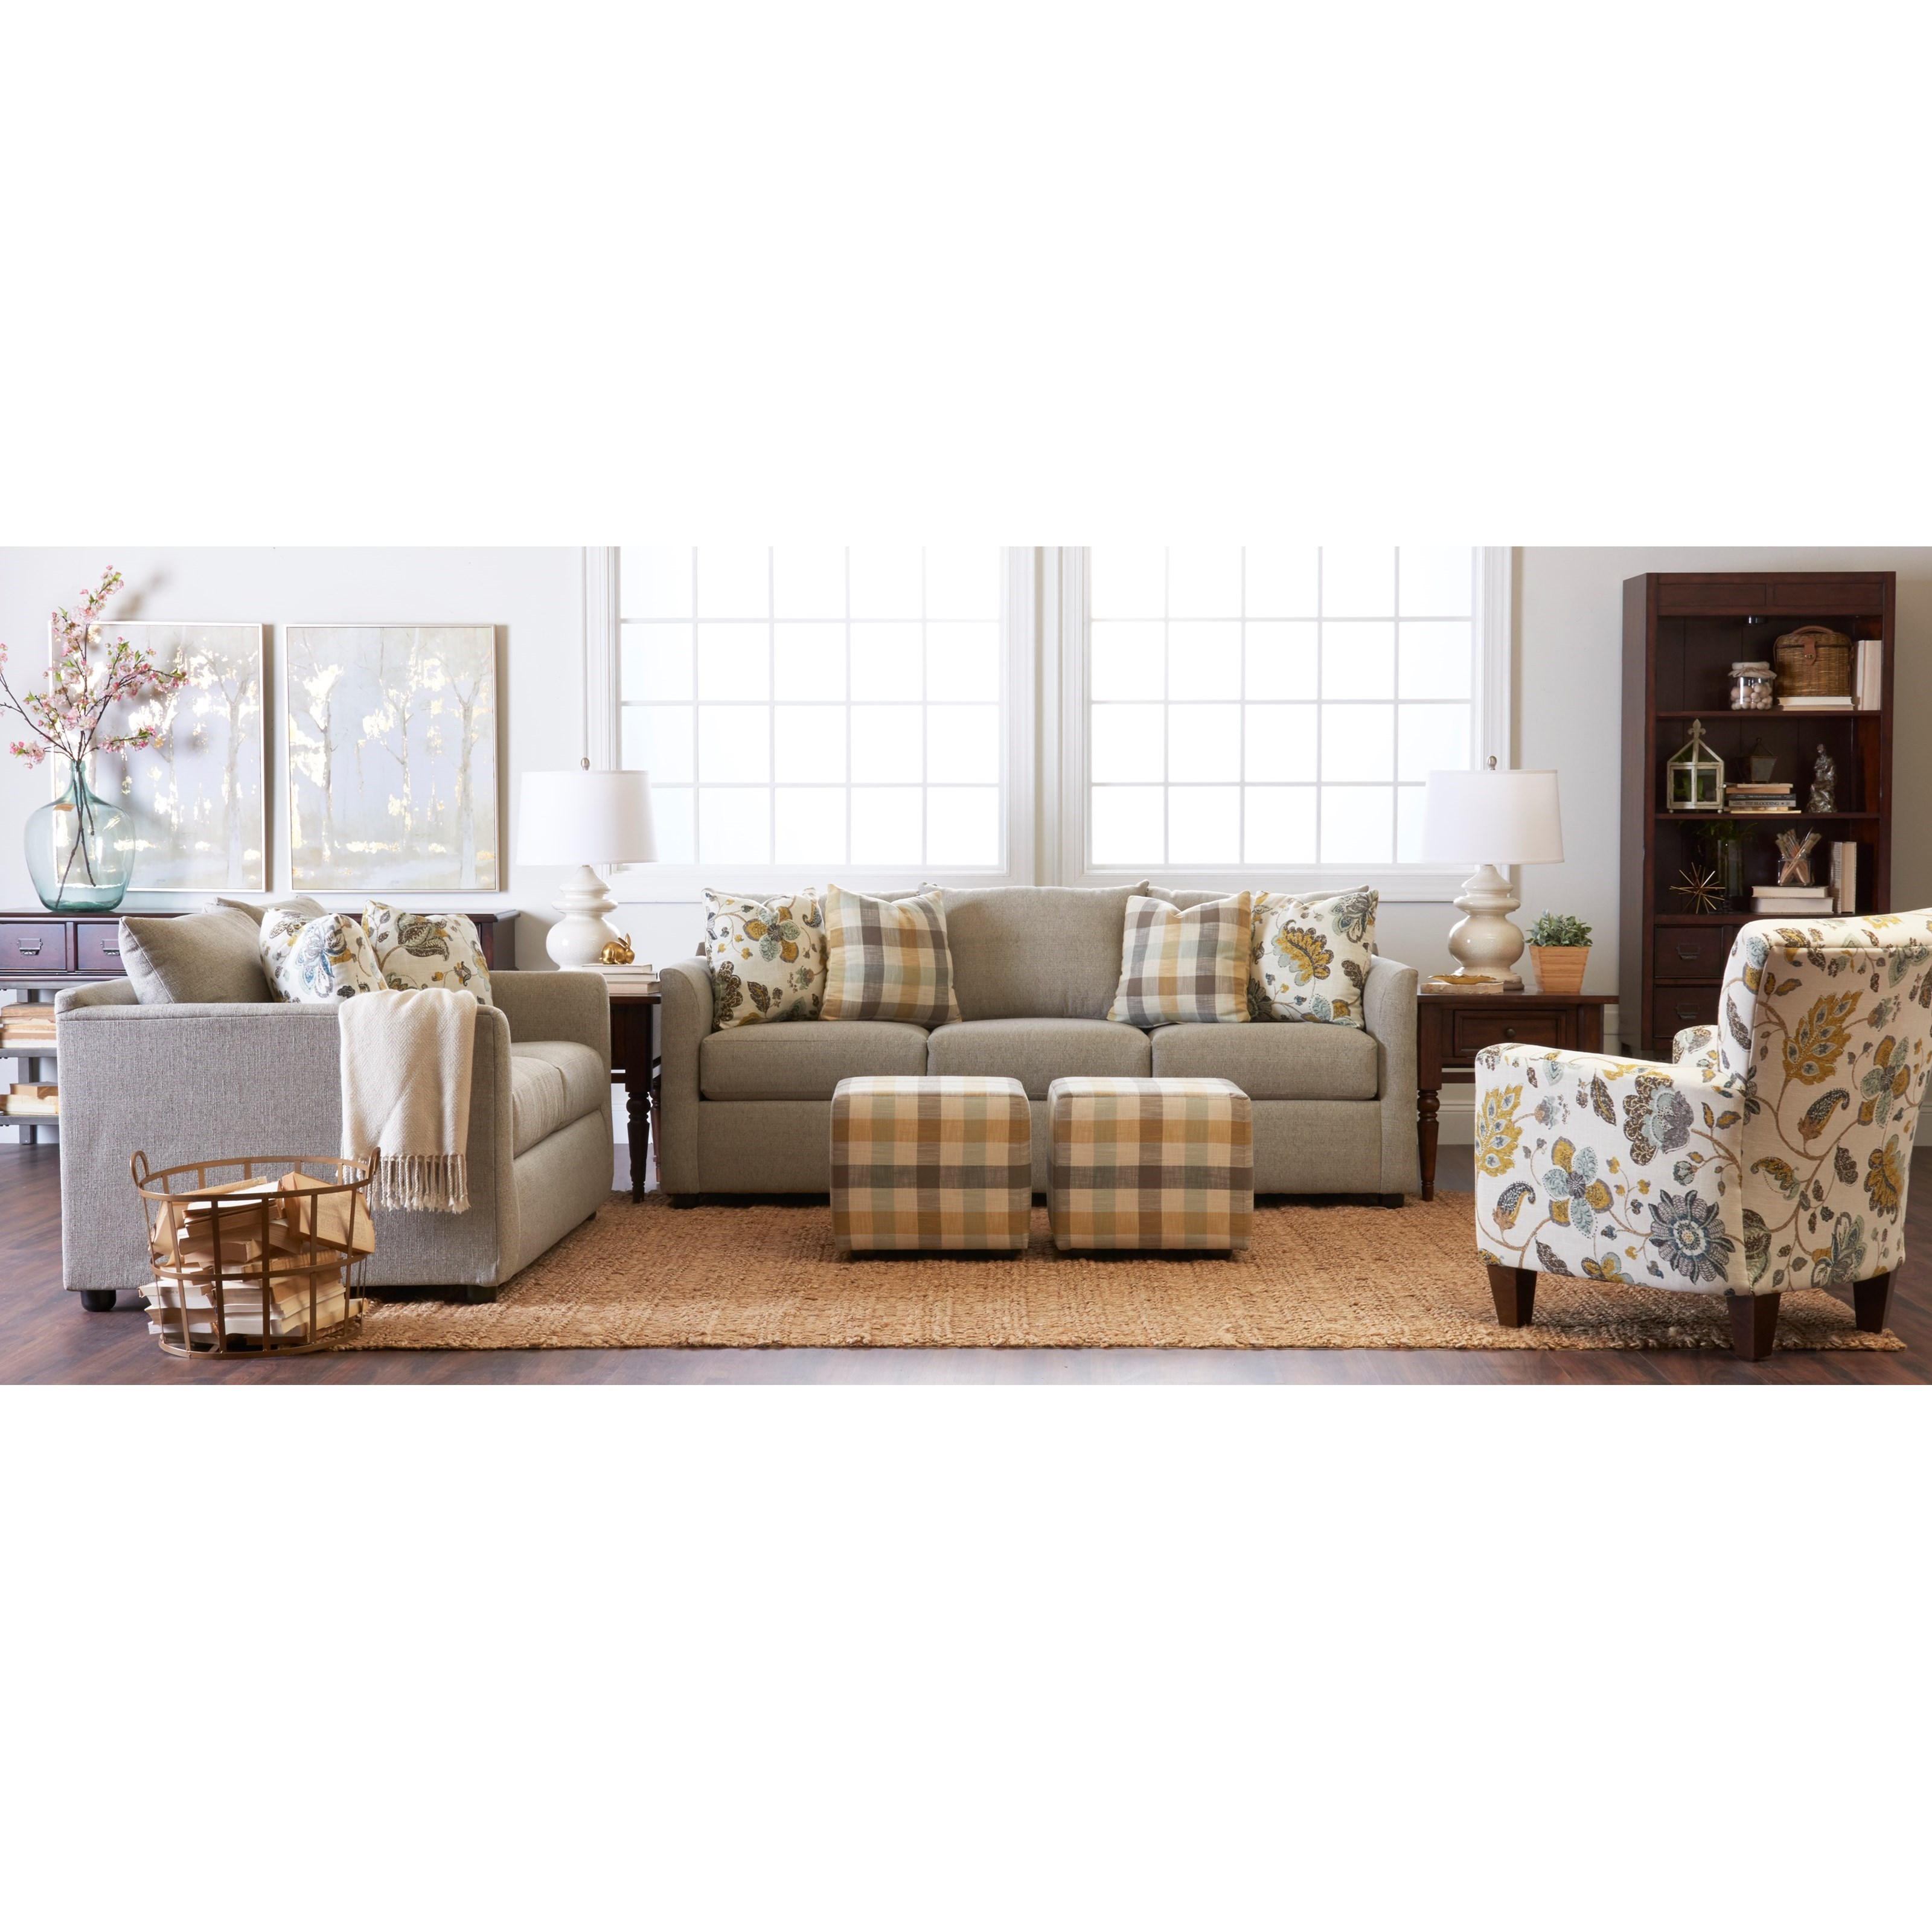 Atlanta Stationary Living Room Group by Klaussner at Value City Furniture